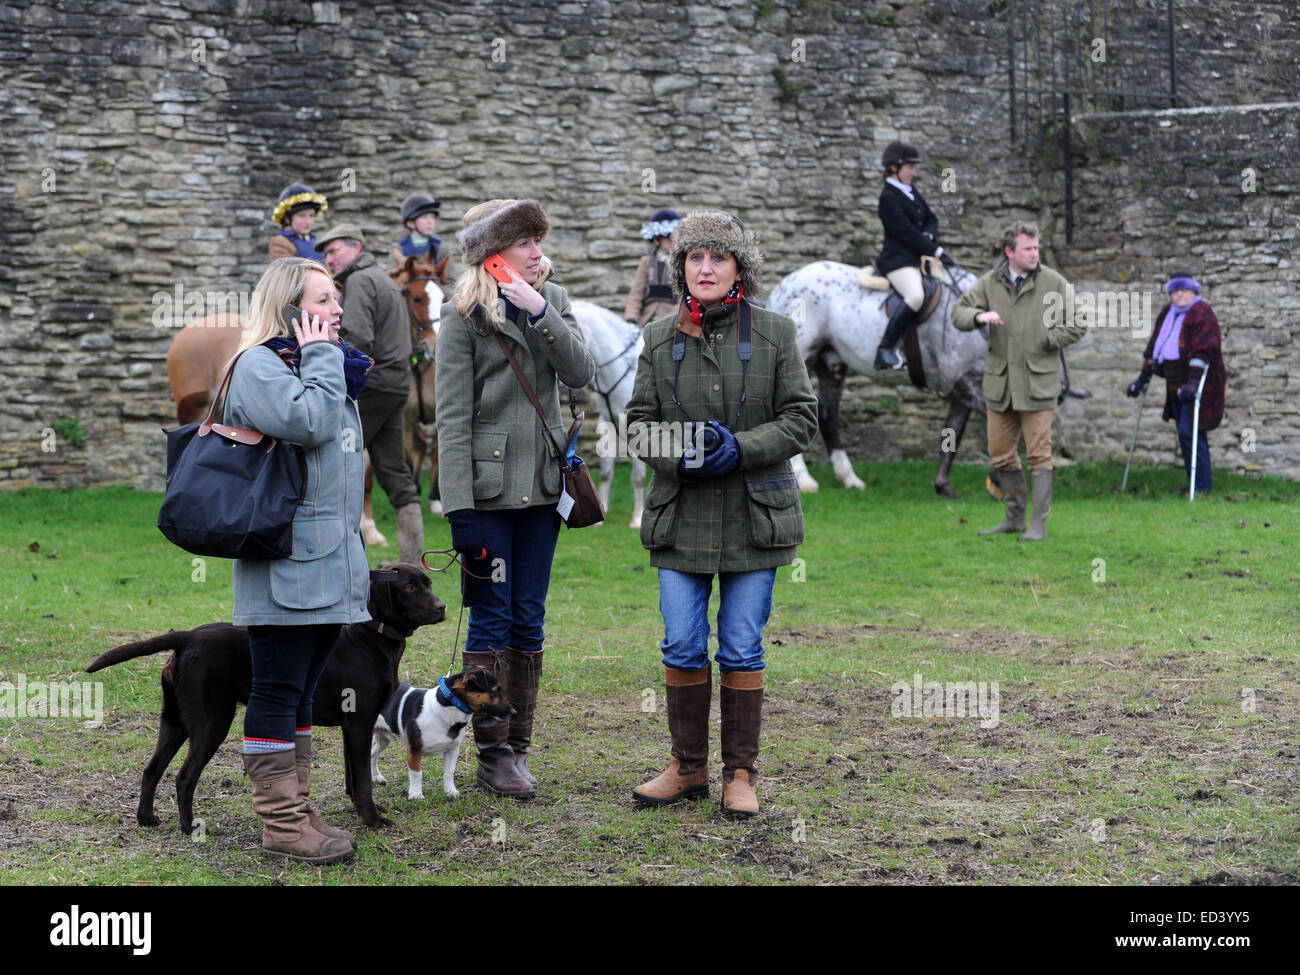 Spectators at The Ludlow Hunt Boxing Day meet at Ludlow Castle - Stock Image